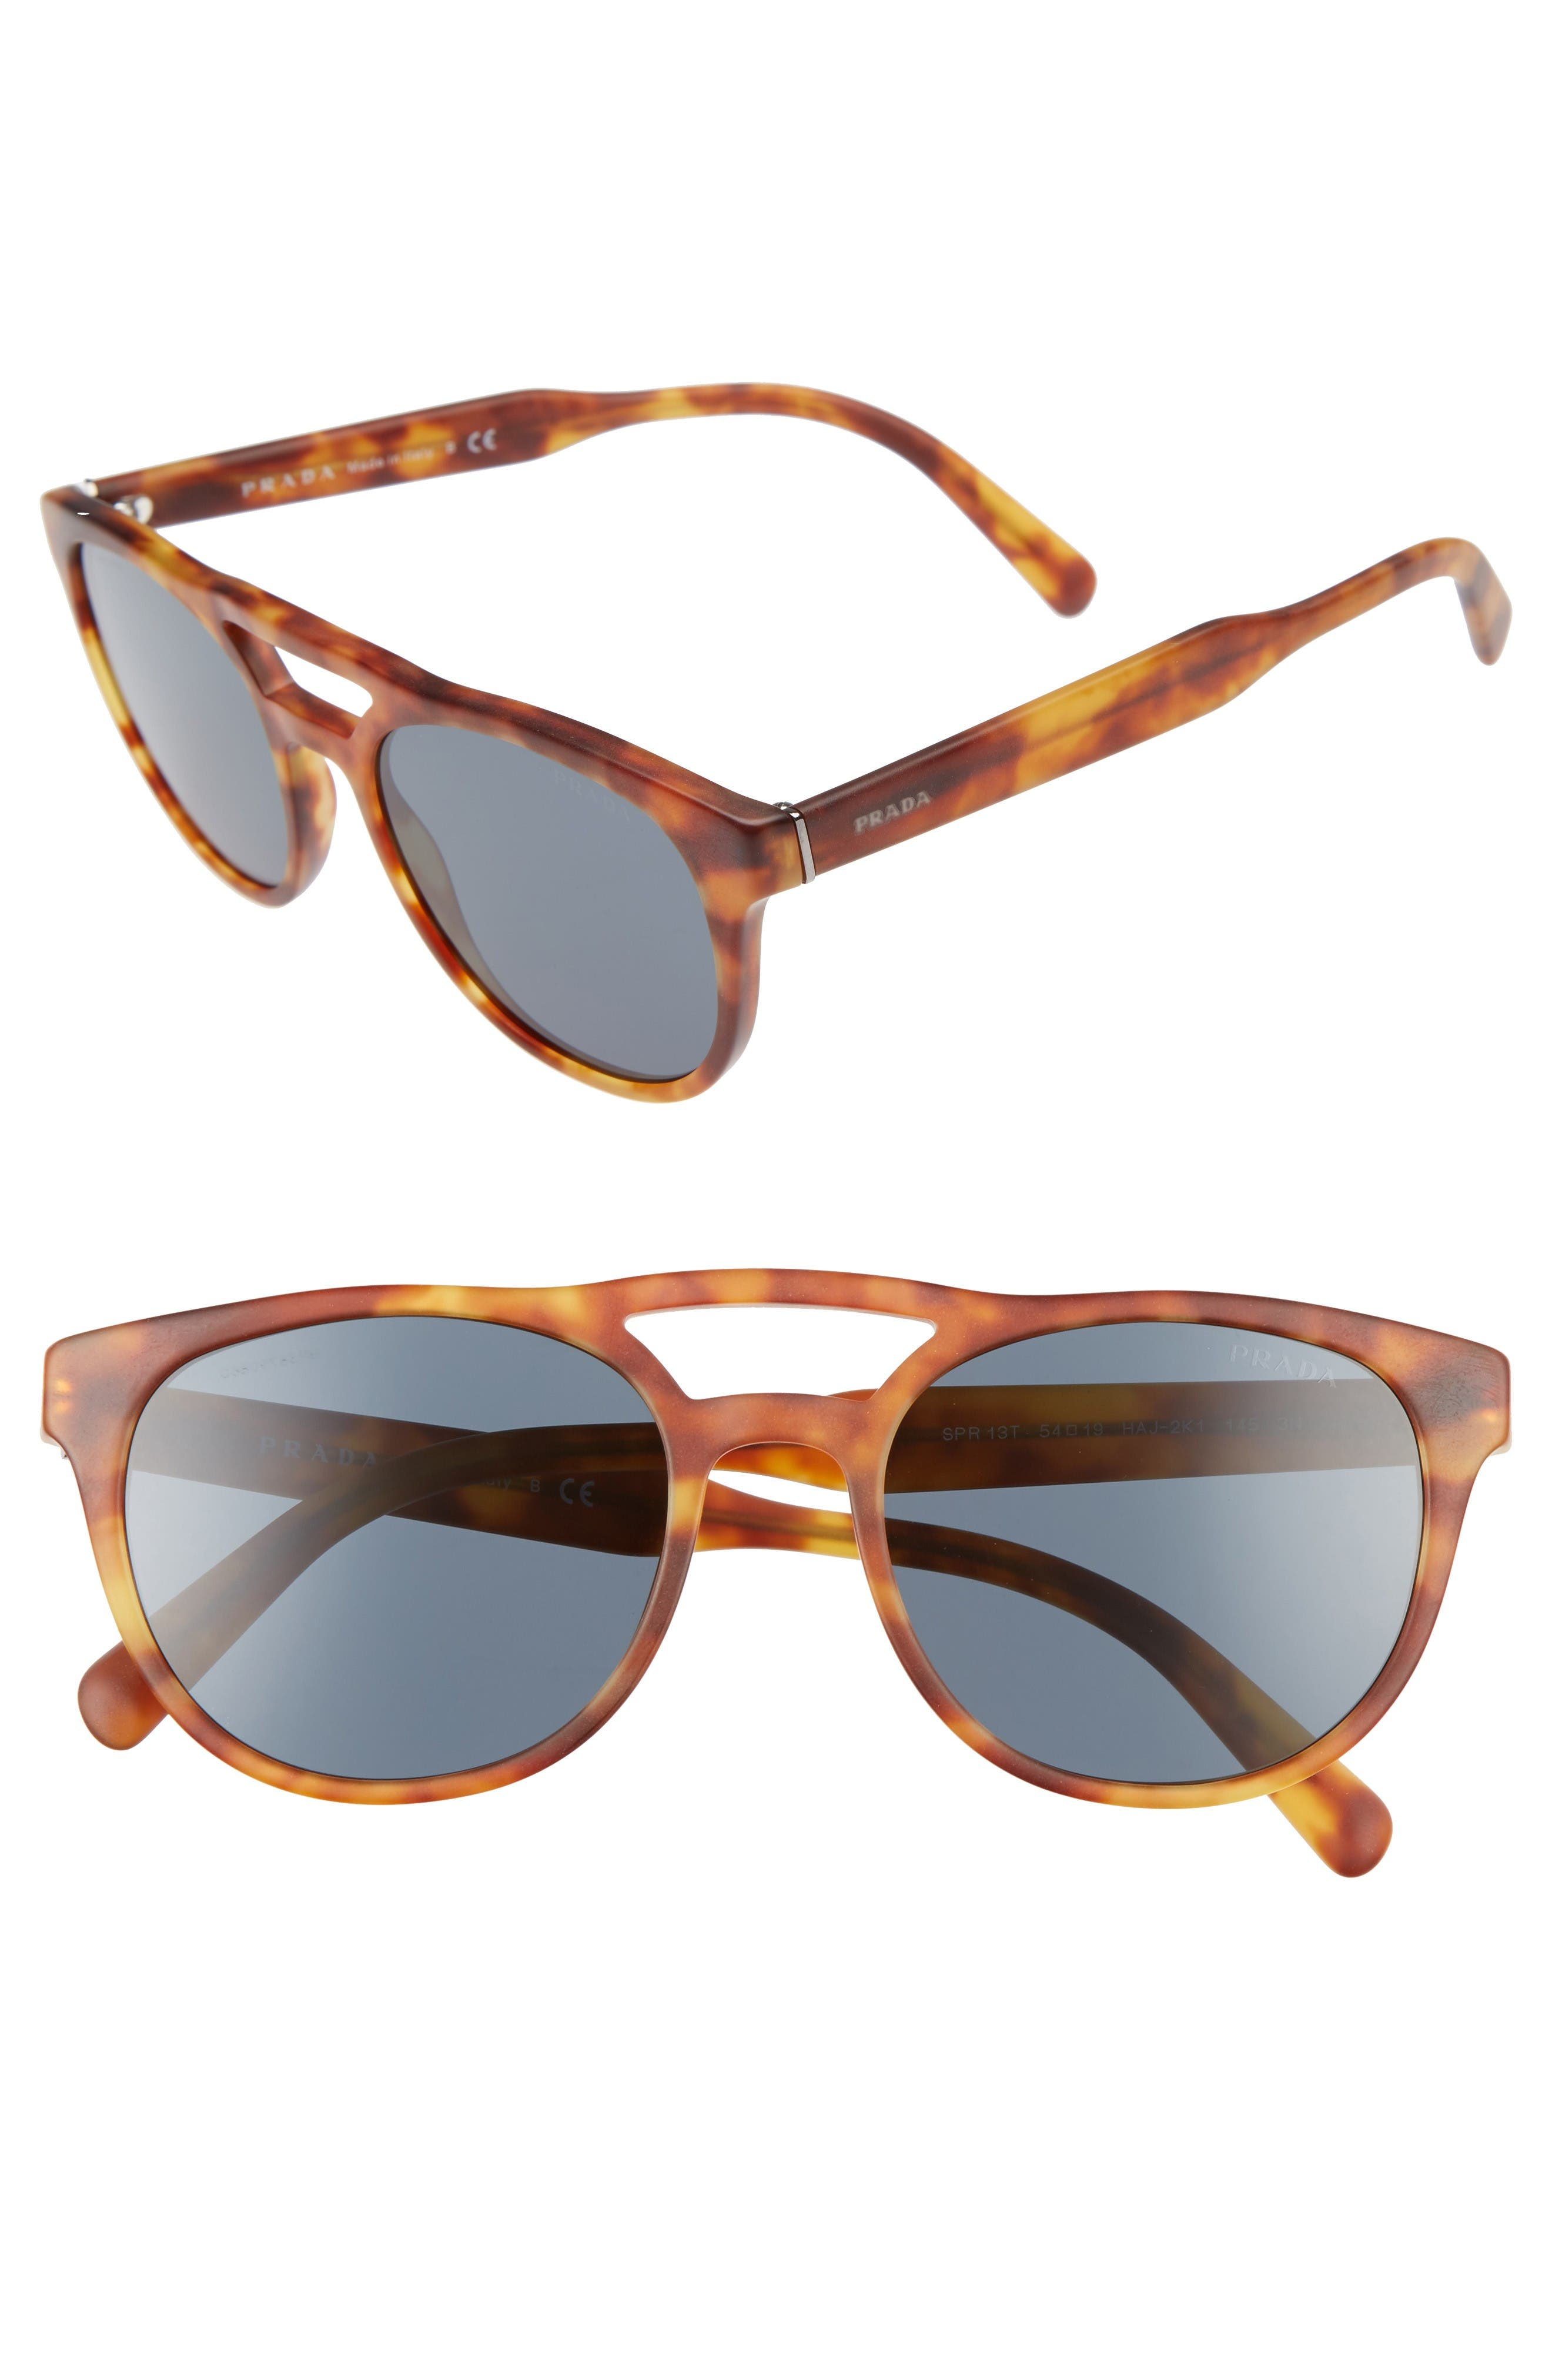 Alternate Image 1 Selected - Prada 54mm Square Sunglasses